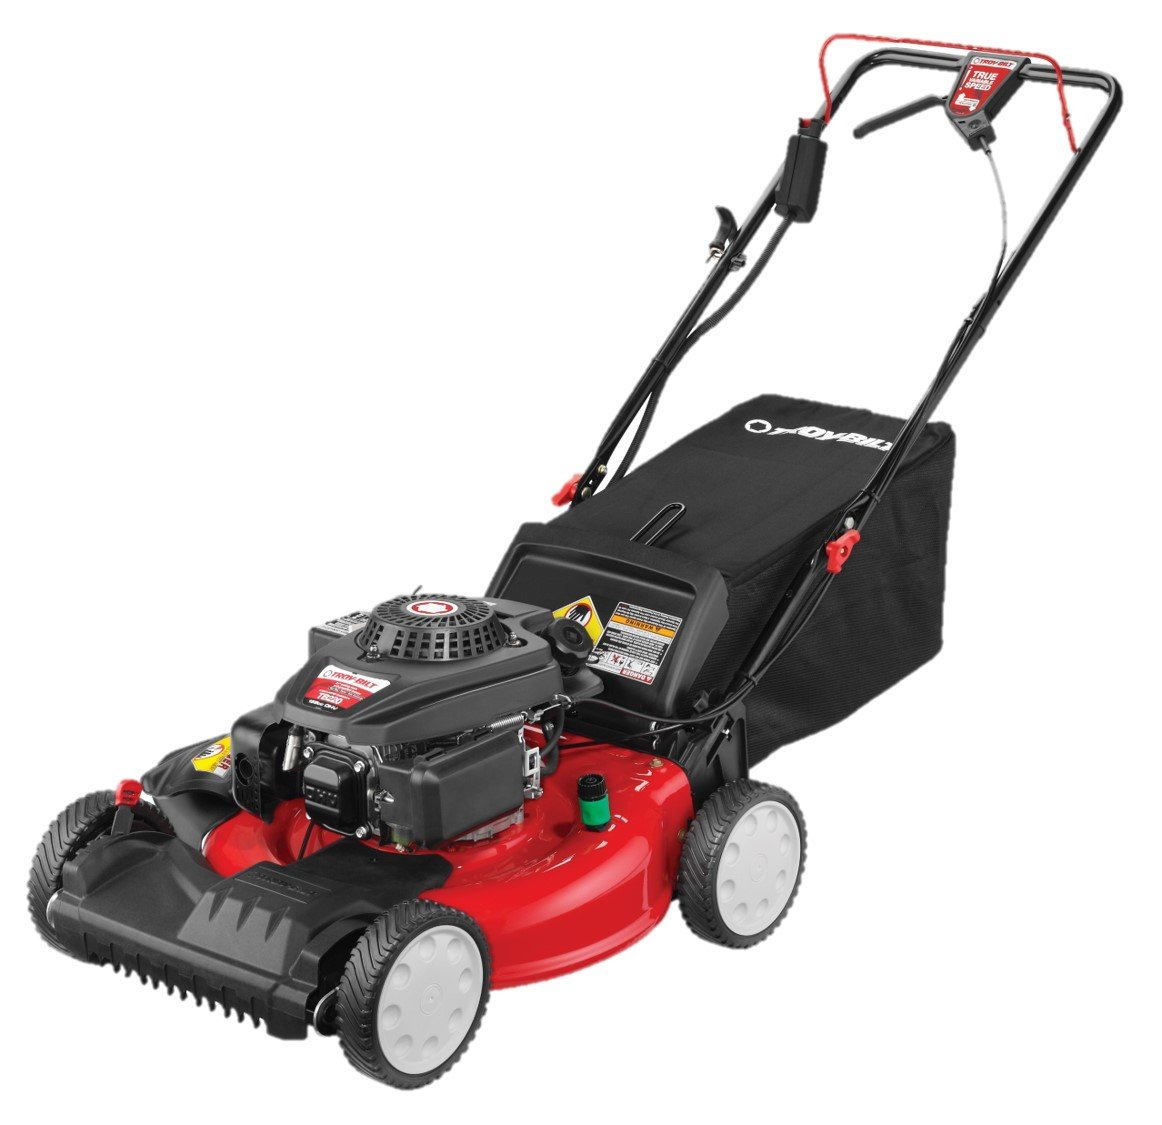 "Troy-Bilt 12AGA2M6766 21"" Self-Propelled Mower"